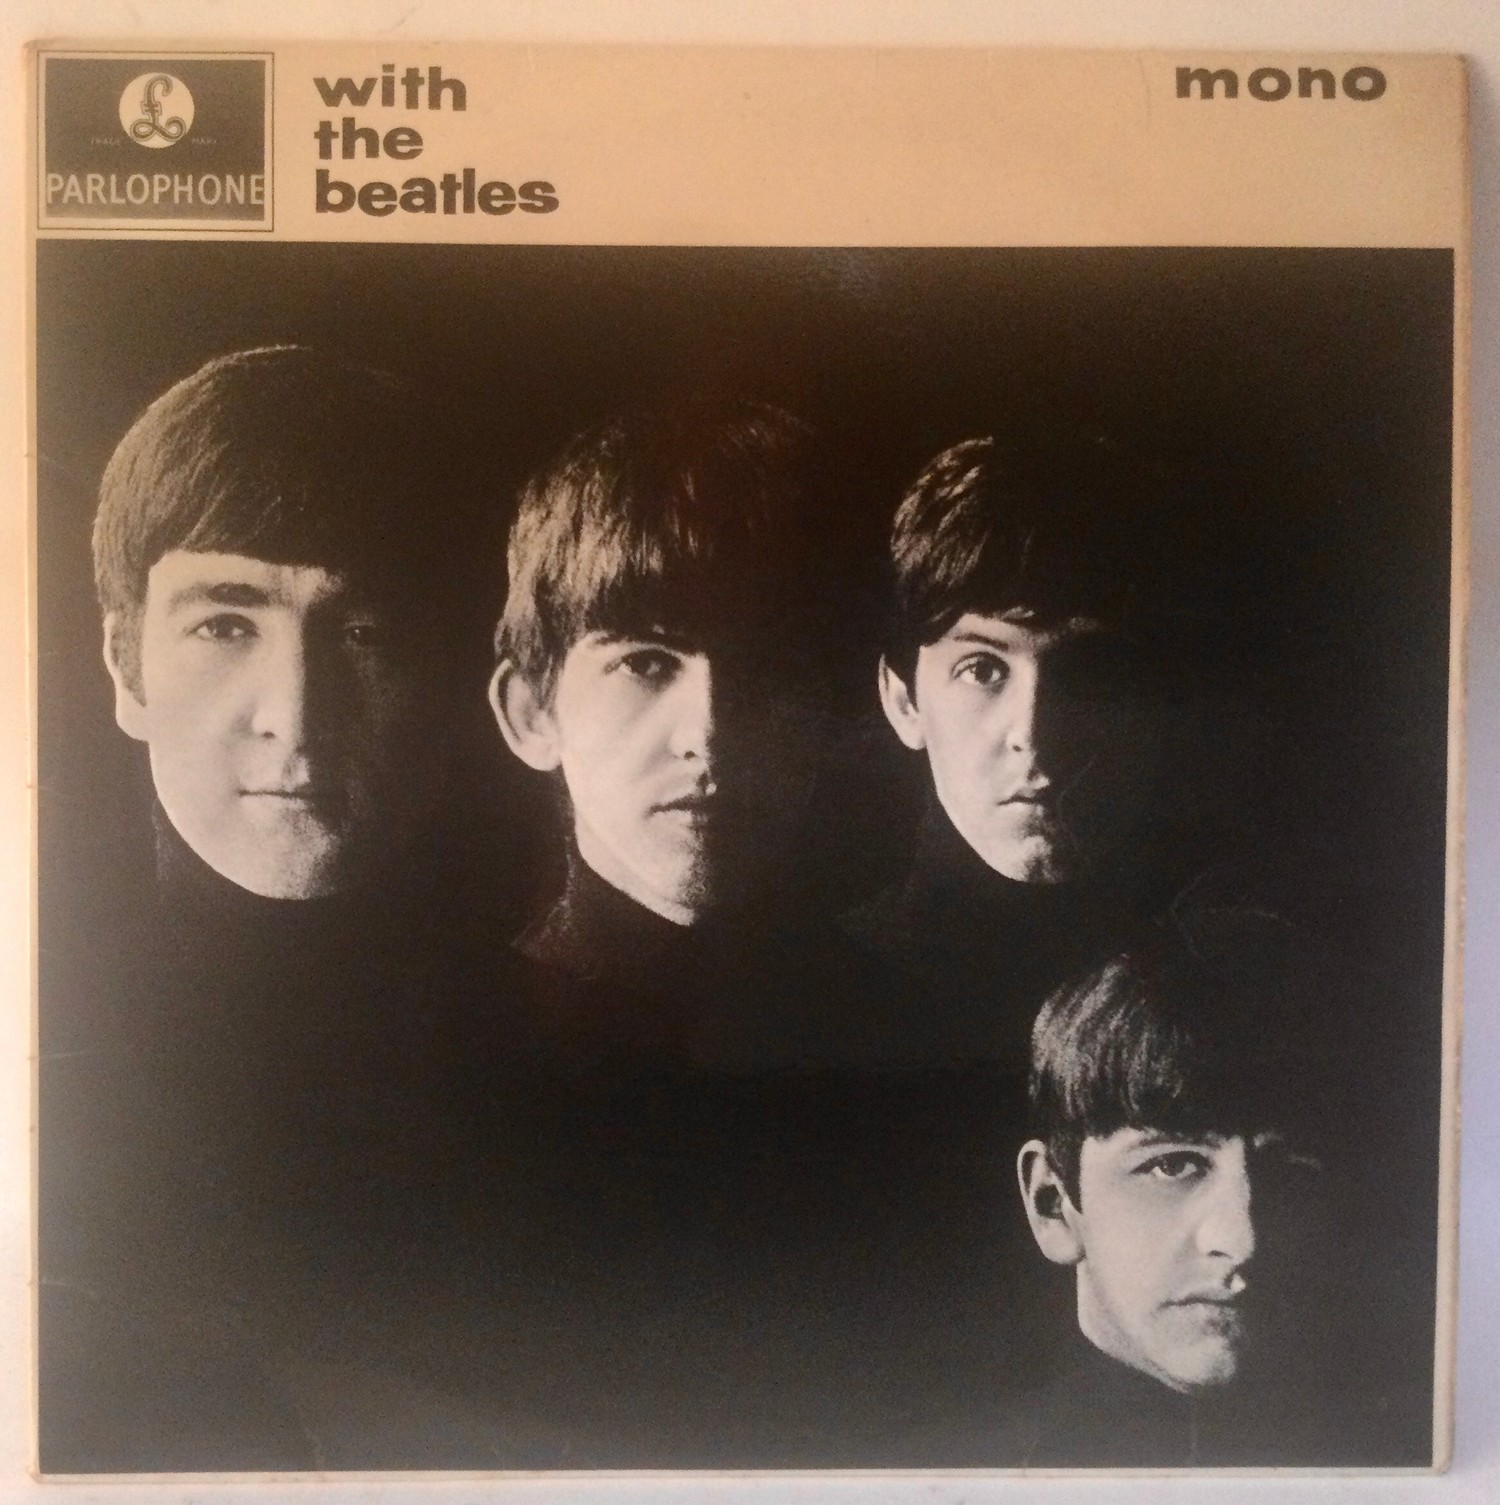 BEATLES 'WITH THE BEATLES' LP RECORD. Spelling mistake here on side 2 label with 'Got A' instead